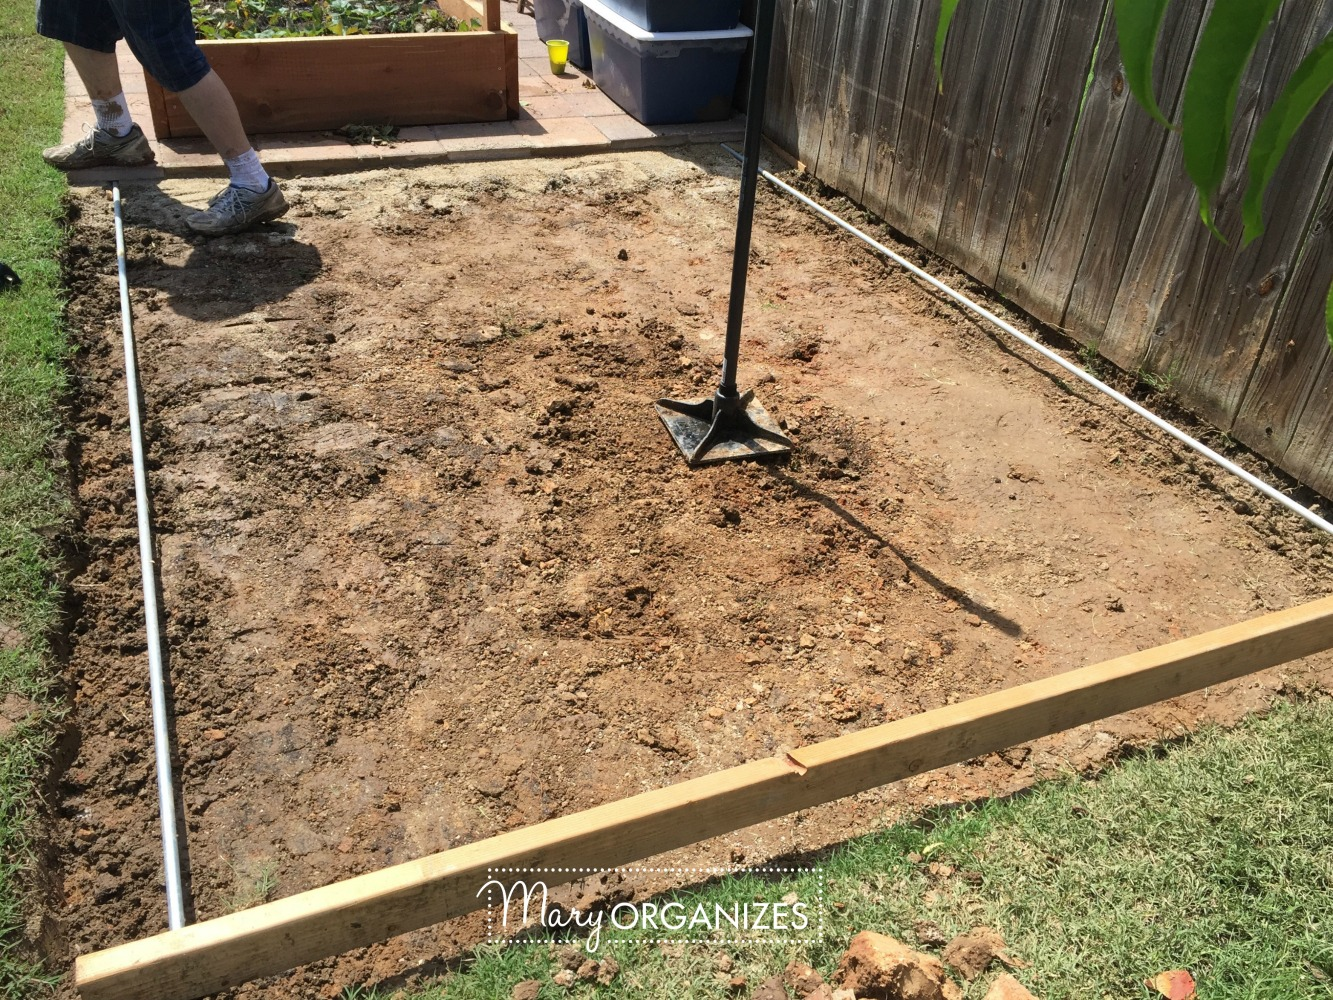 How To Install Paver Patio - My Raised Garden Foundation 6